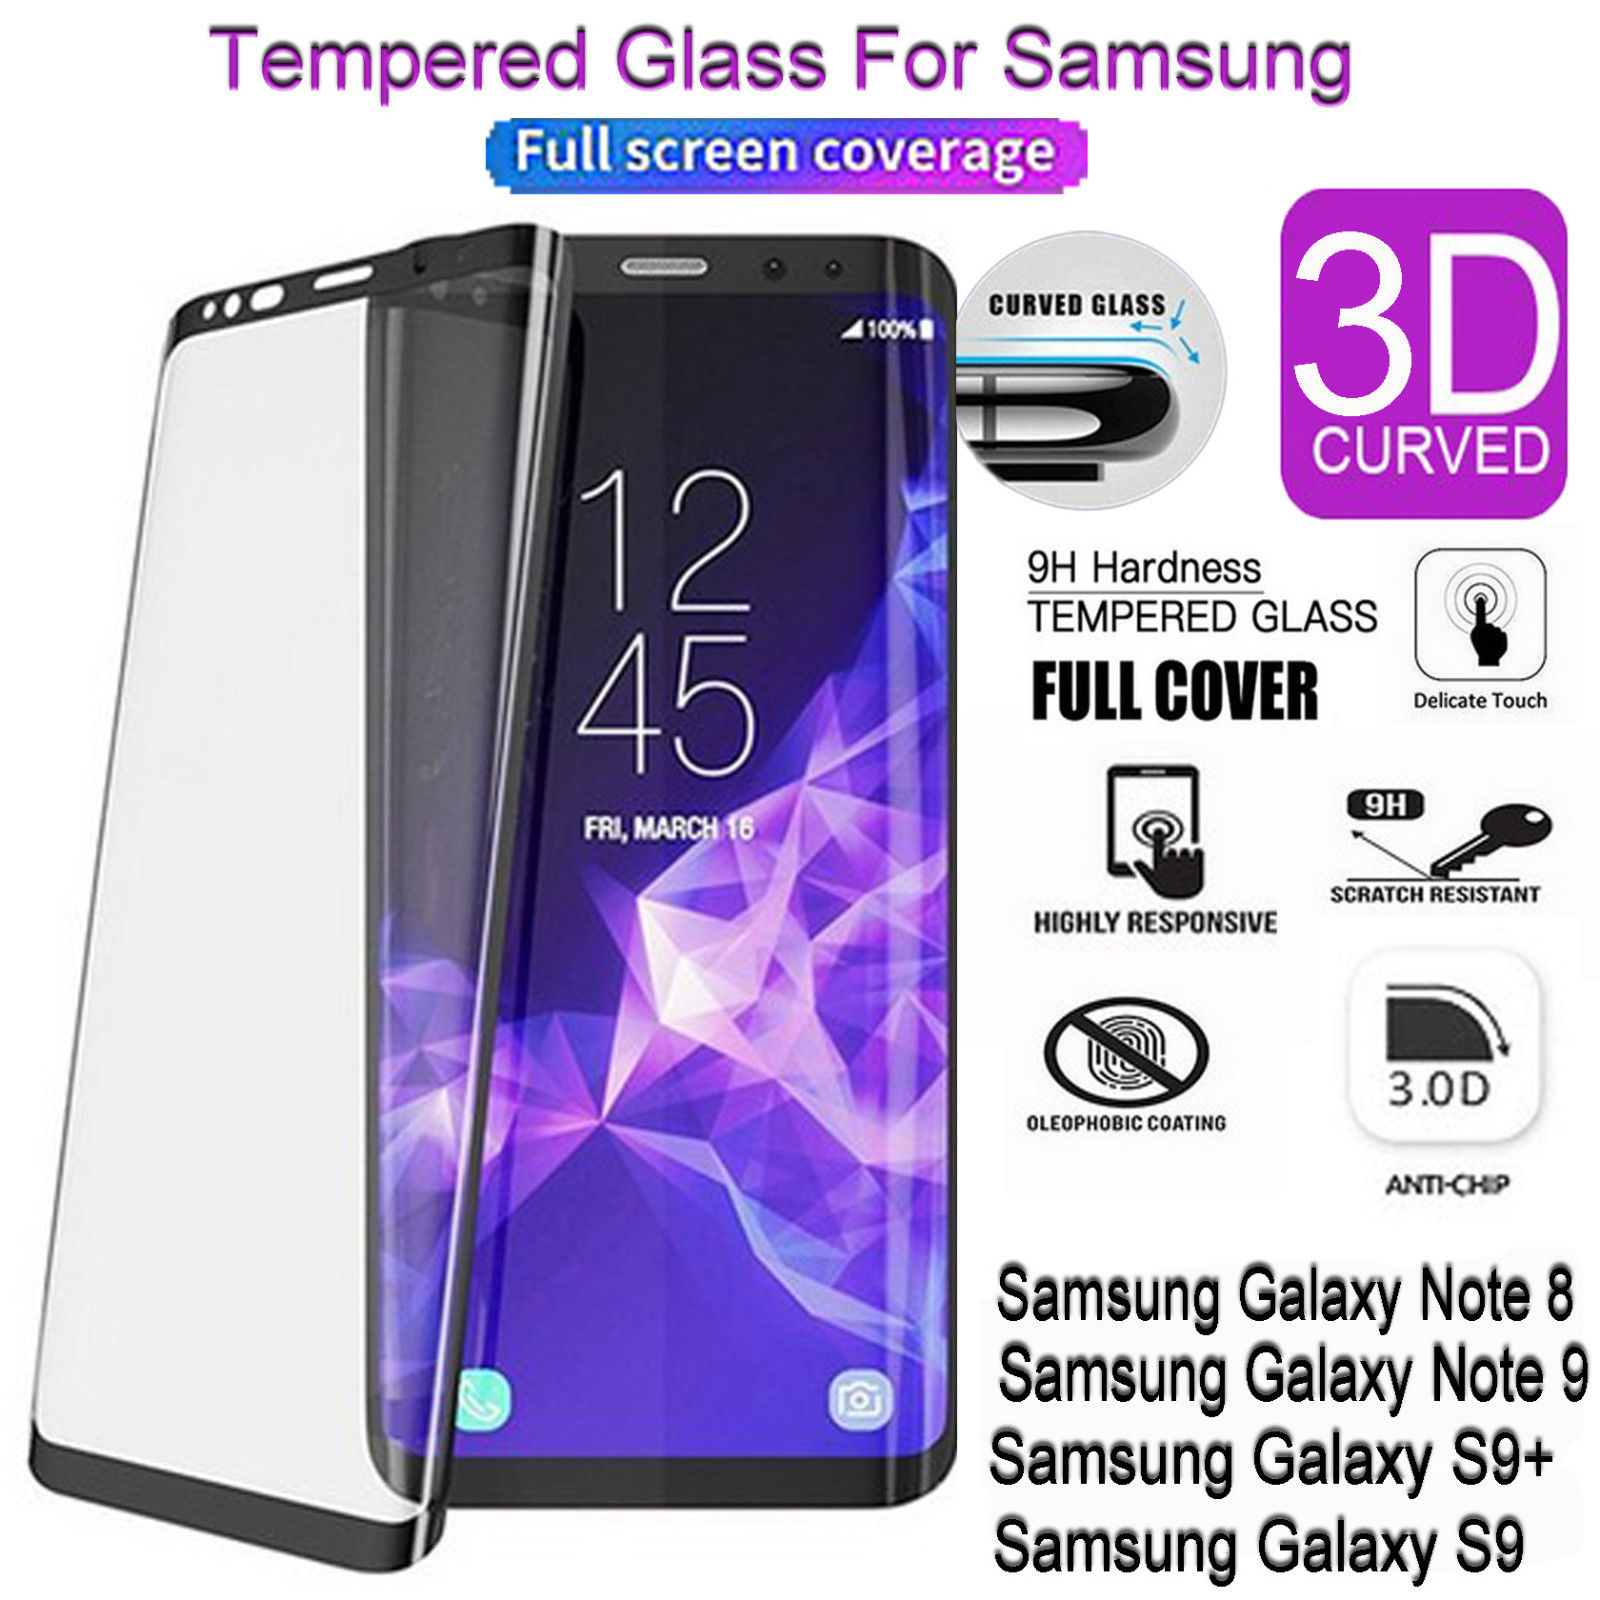 Details about 3D Curved Tempered Glass Screen Protector For Samsung Galaxy Note9 S8 S9 Plus IY